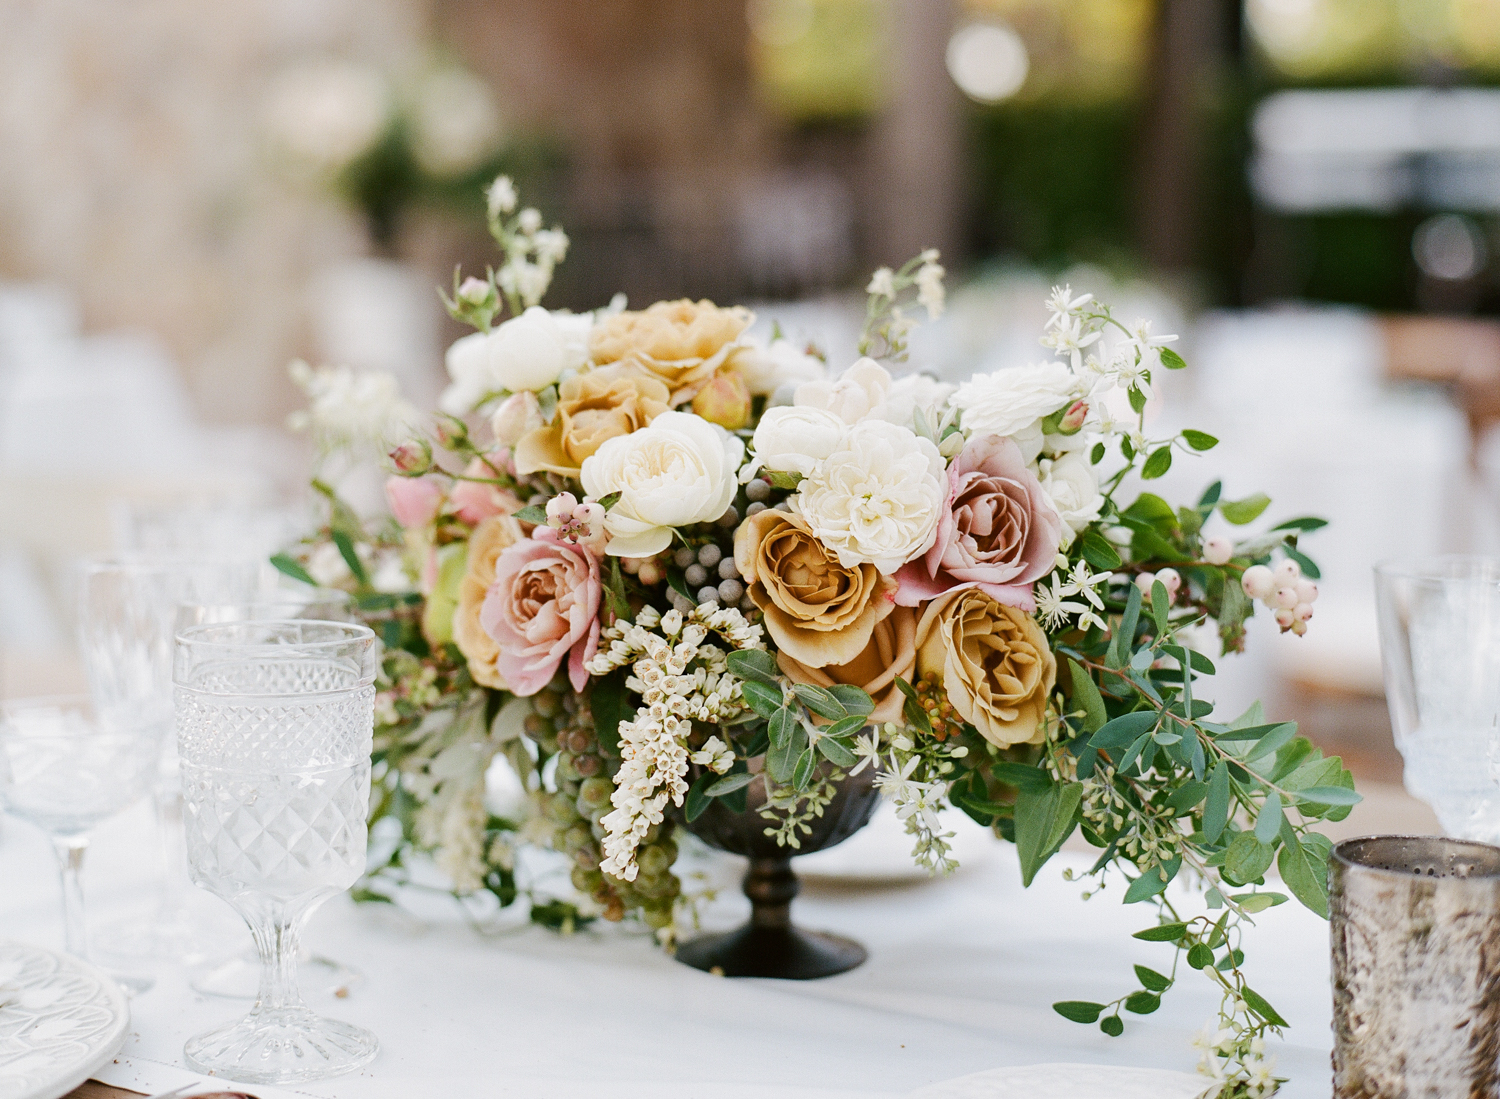 Gold and dusty blush roses make for a unique and elegant centerpiece; photo by Sylvie Gil